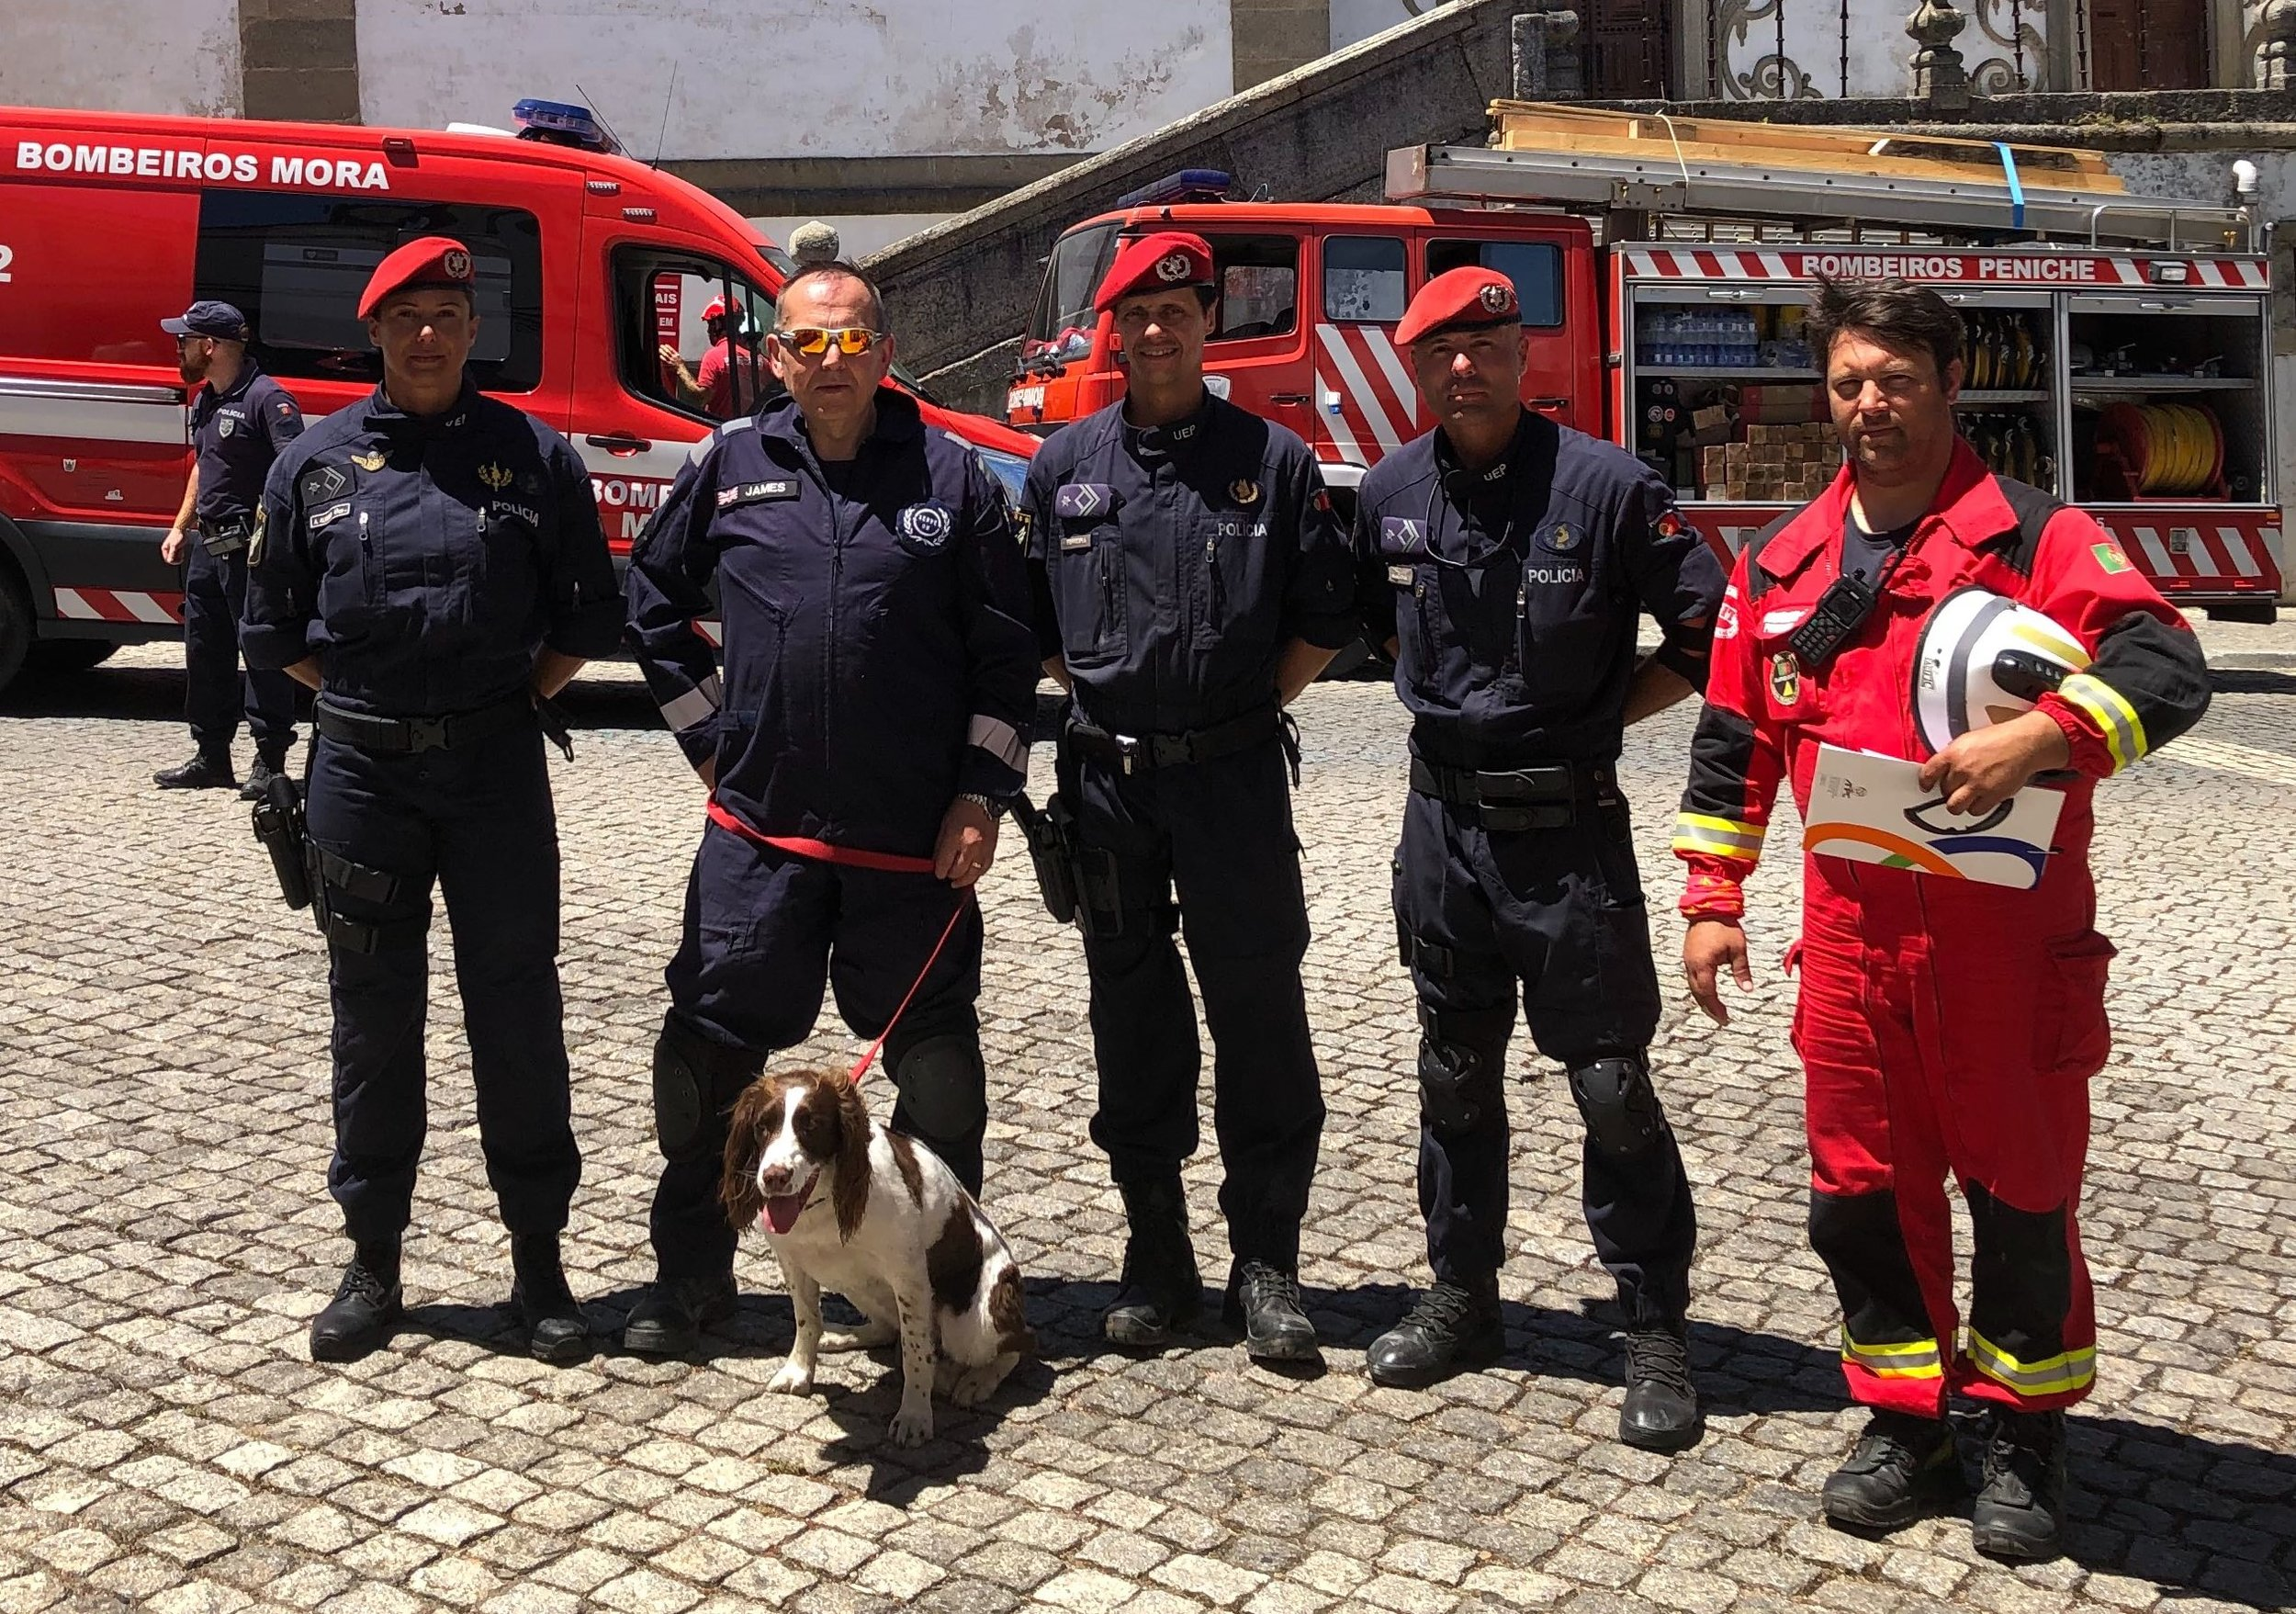 Serve On search dog Molly and handler James with members of the Associacao Humanitaria dos Bombeiros Volontarios de Peniche (AHBV) during the Cascade'19 EU Civil Protection Exercise in Portugal.